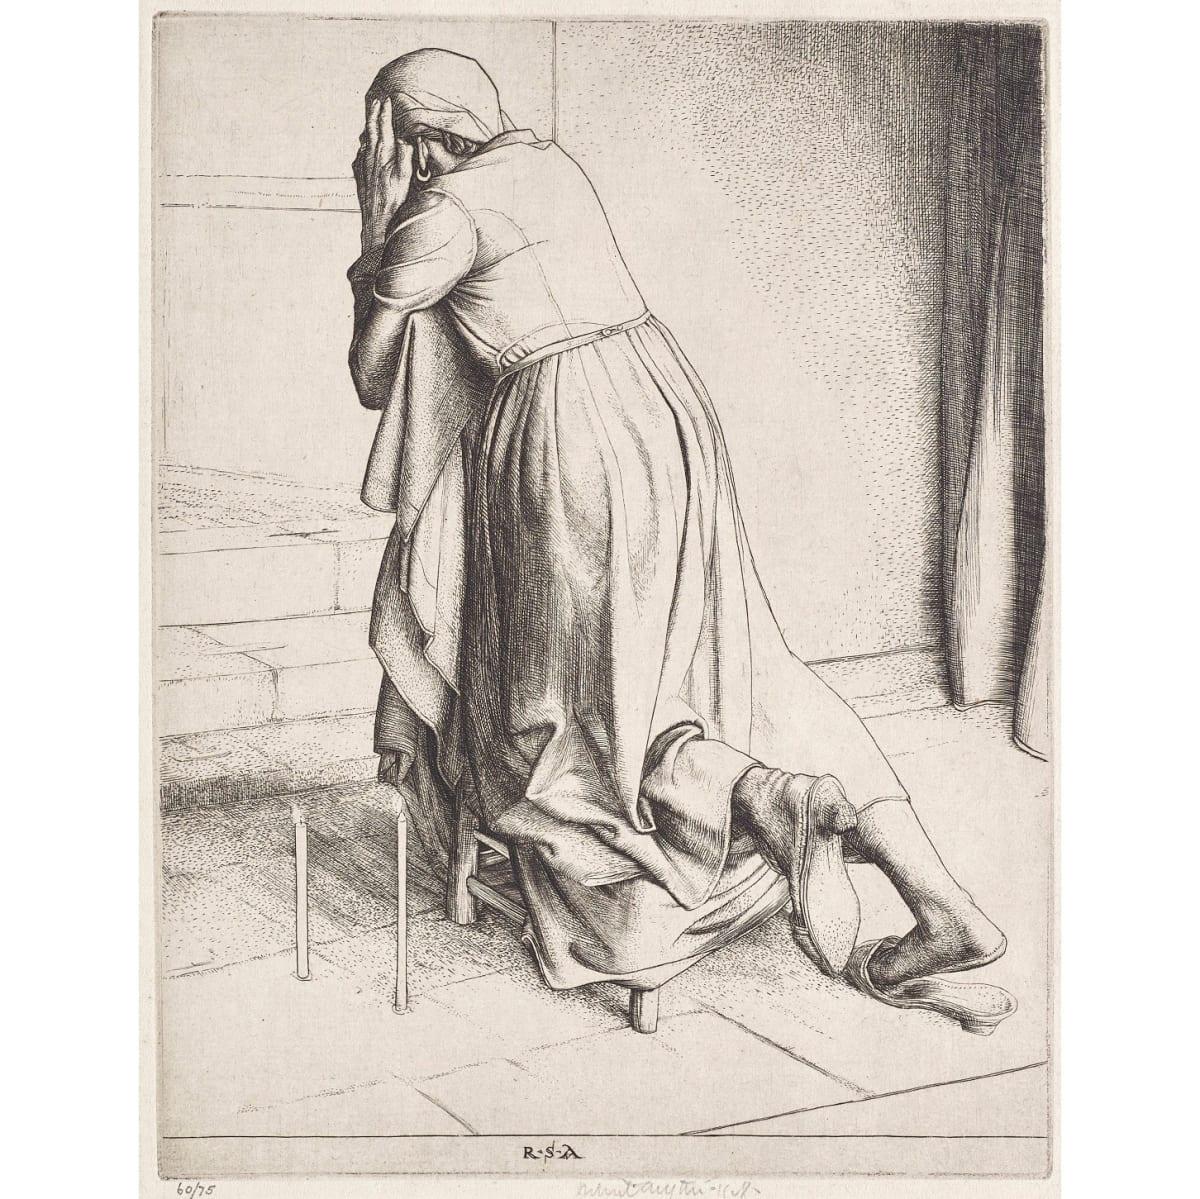 Robert Sargent Austin Woman praying, 1928 initialled RSA in plate; signed and dated 1928 etching plate size: 7 7/8 x 6 1/8 inches numbered 60/75 in pencil to margin